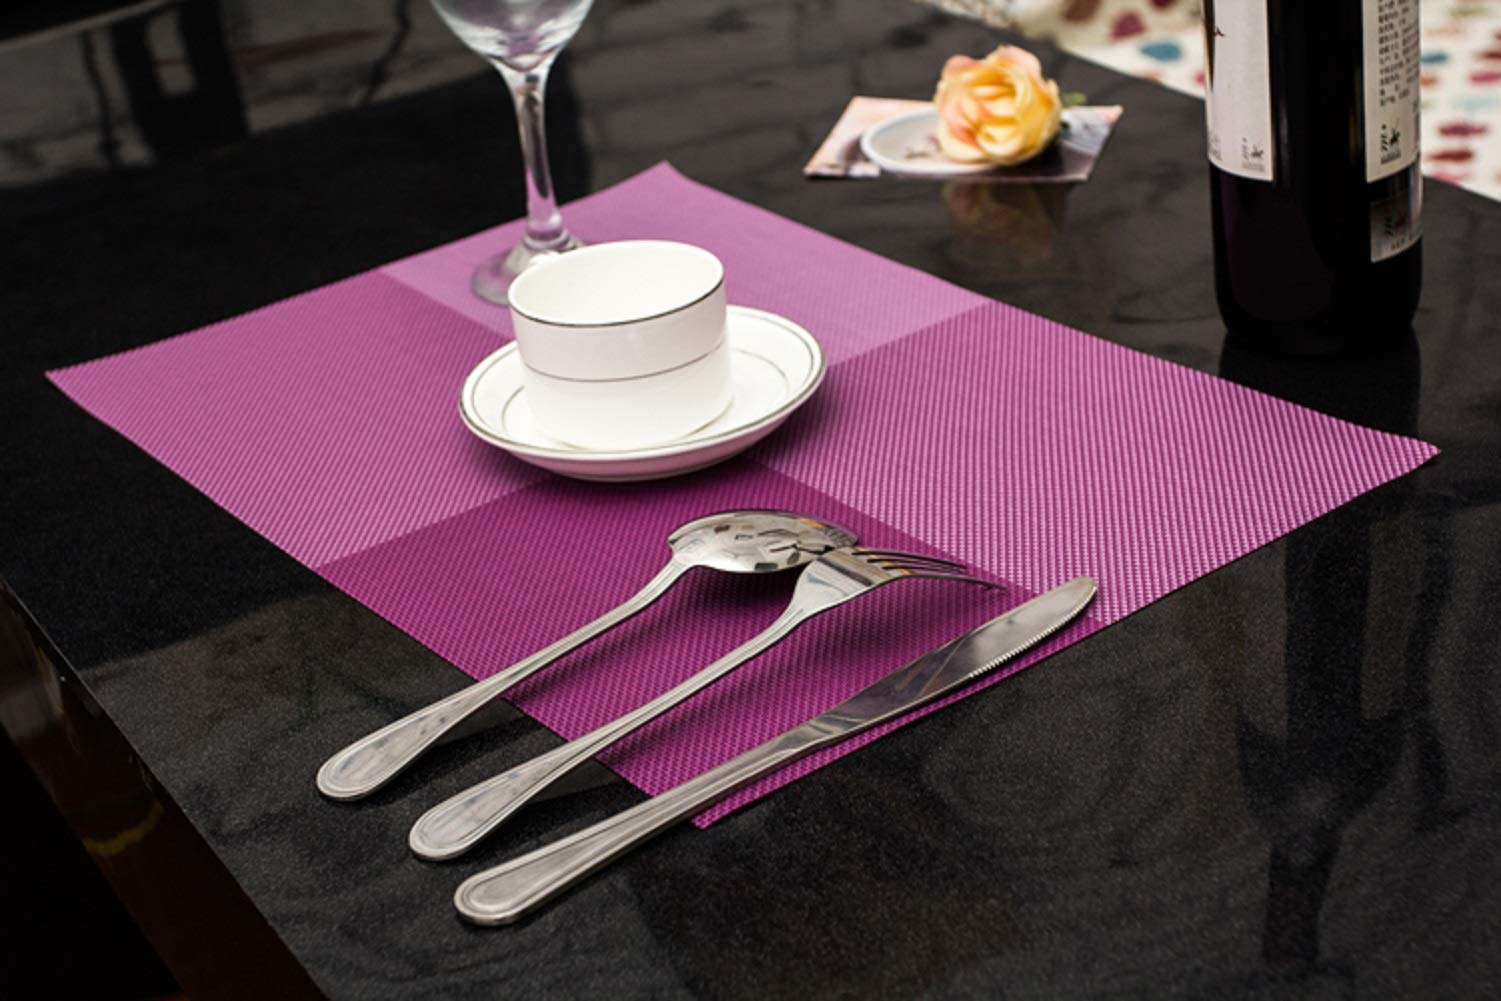 Xugoly Tablemats0702 Table Mats Placemats, Medium, Purple by Xugoly